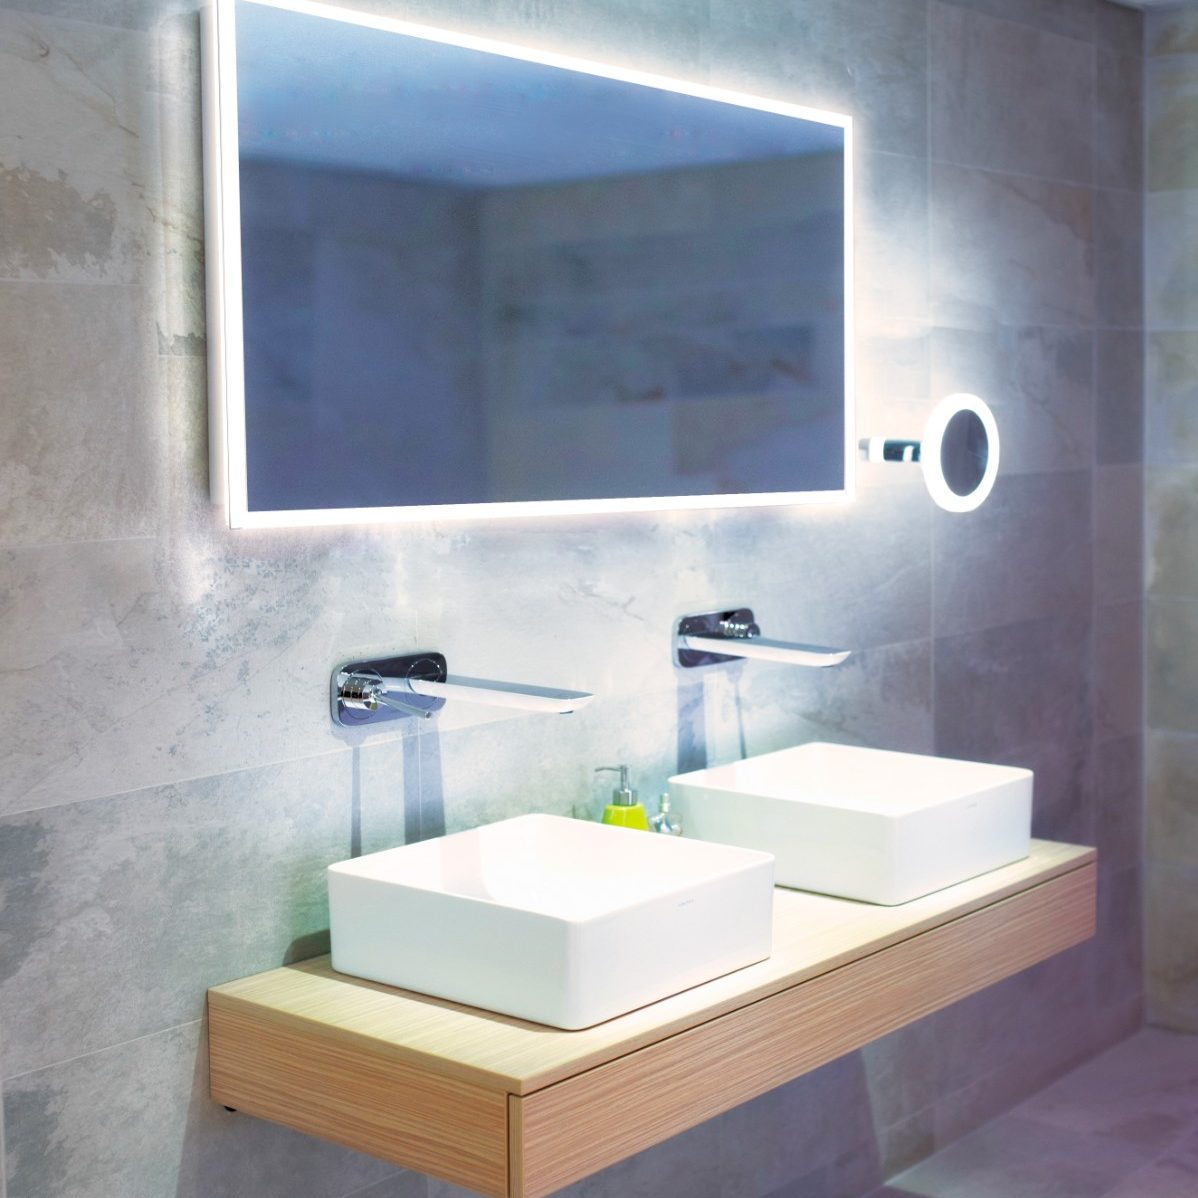 Double Sinks with Large Mounted Wall Mirror